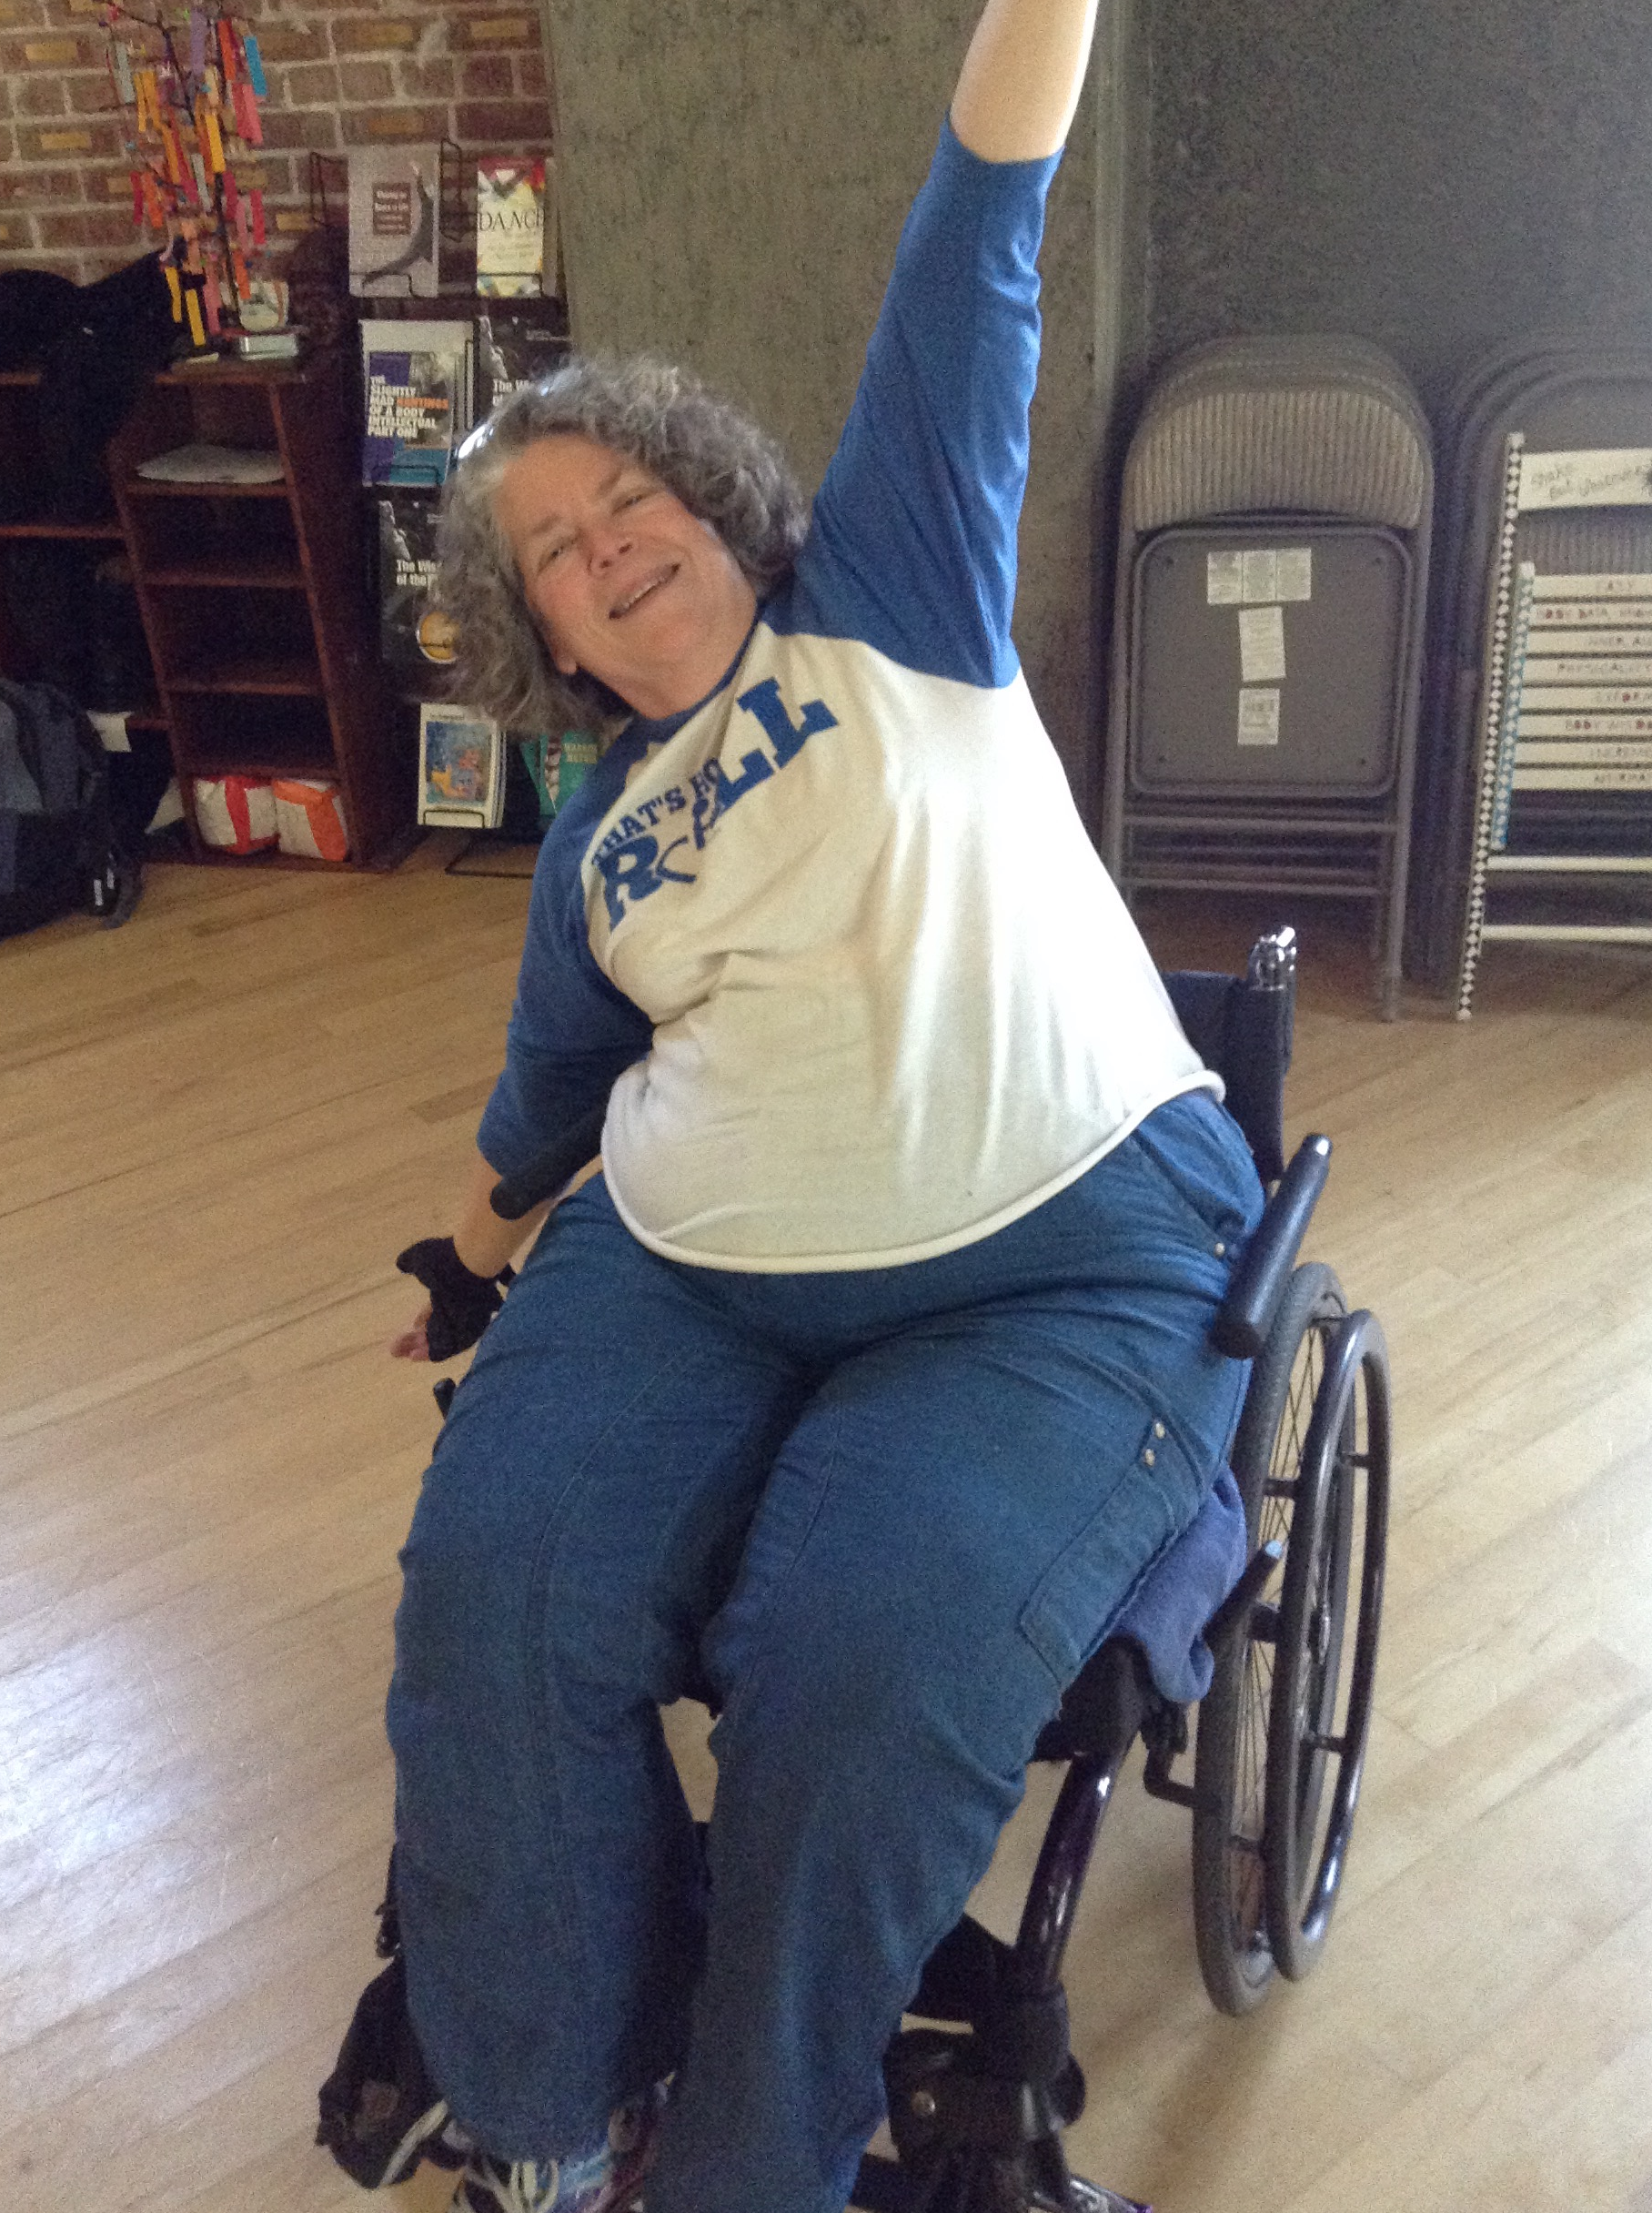 Photo of Tara Ayres. She is a white wheelchair user with graying curly hair. she sits in her wheelchair, stretching her arms out, and smiling at the camera. she is wearing a white t shirt and blue pants.